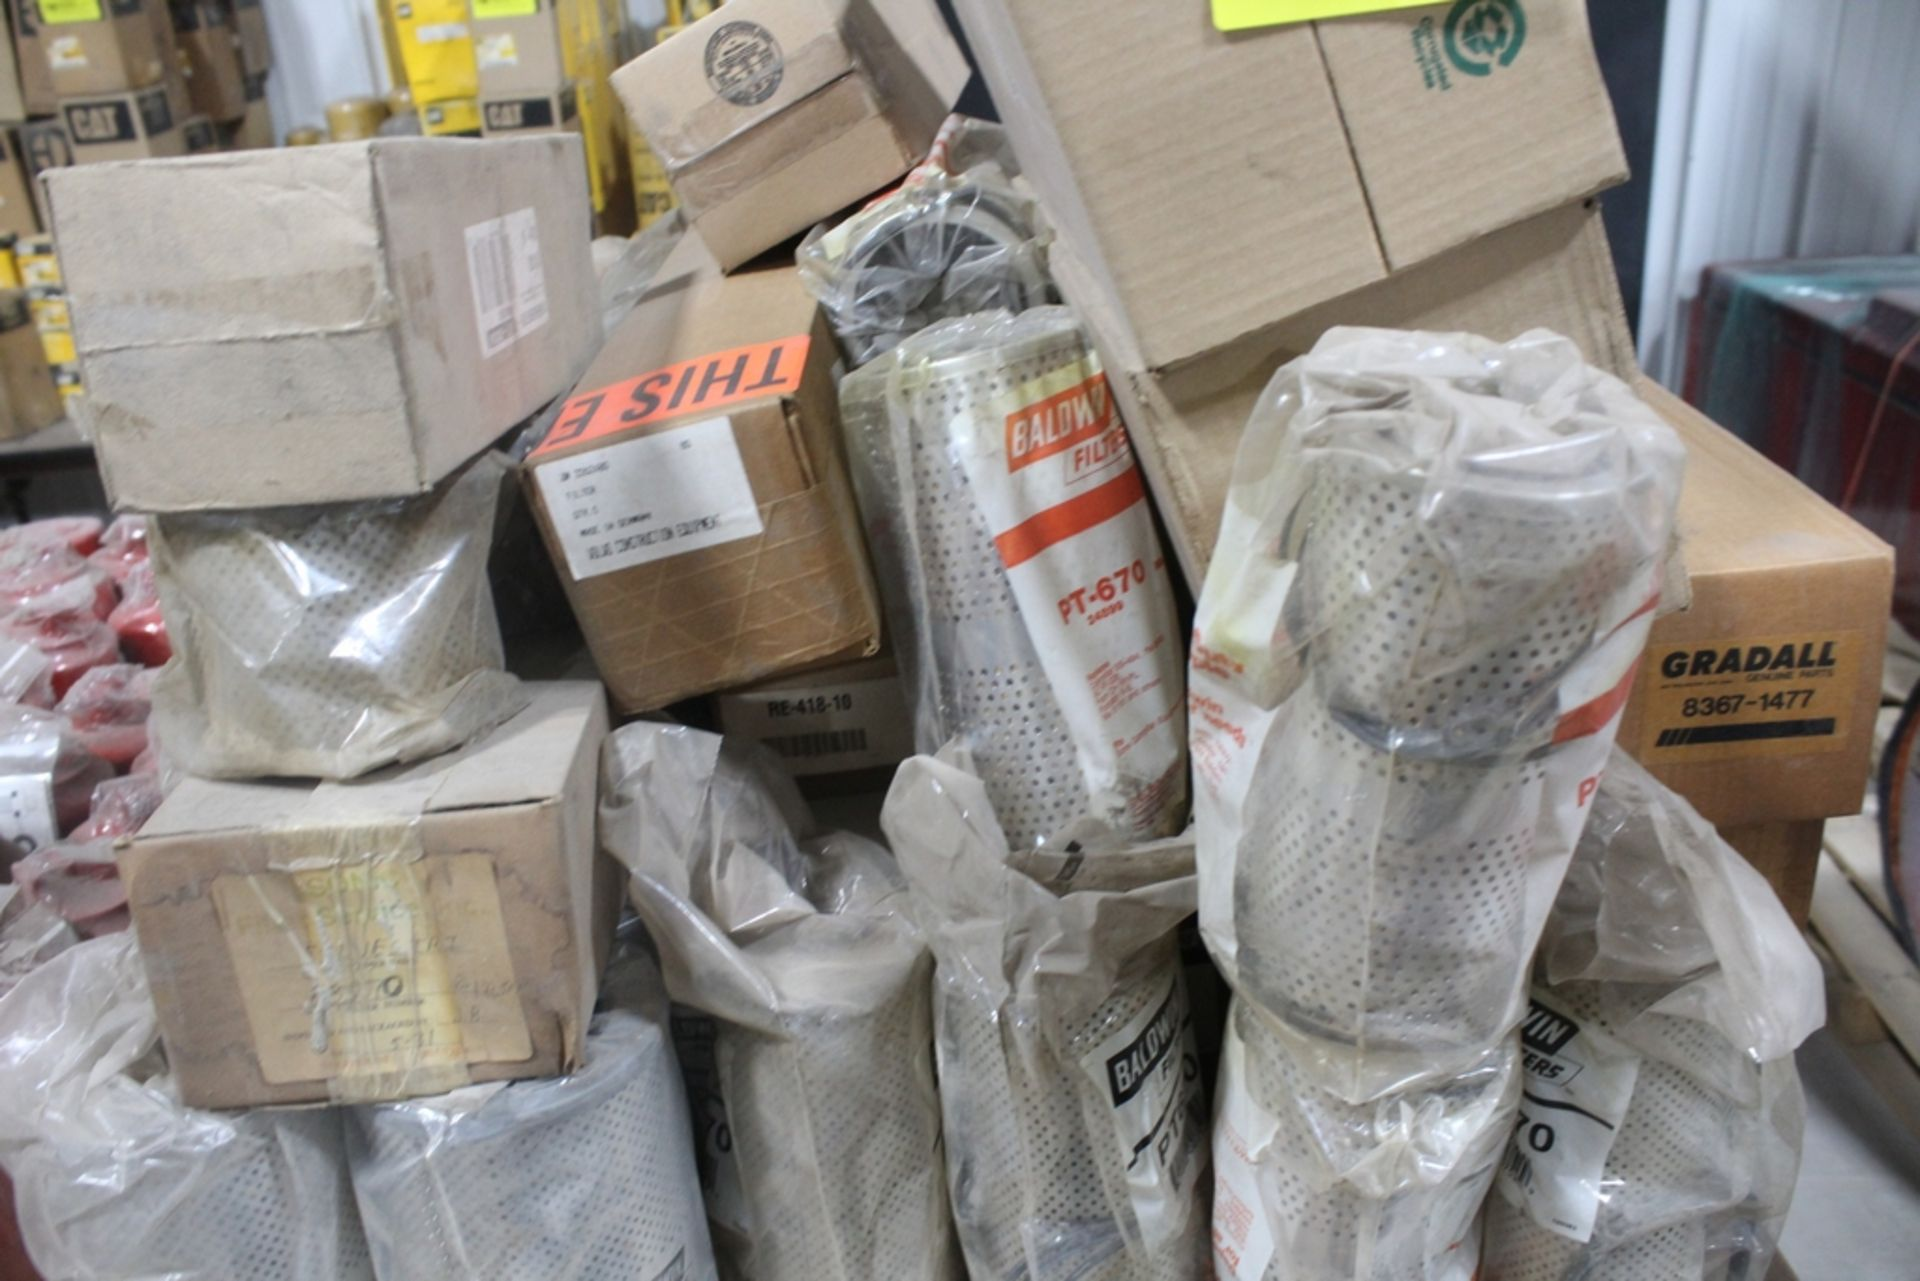 LARGE ASSORTMENT OF BALDWIN AND CASE ELEMENT FILTERS - Image 2 of 2